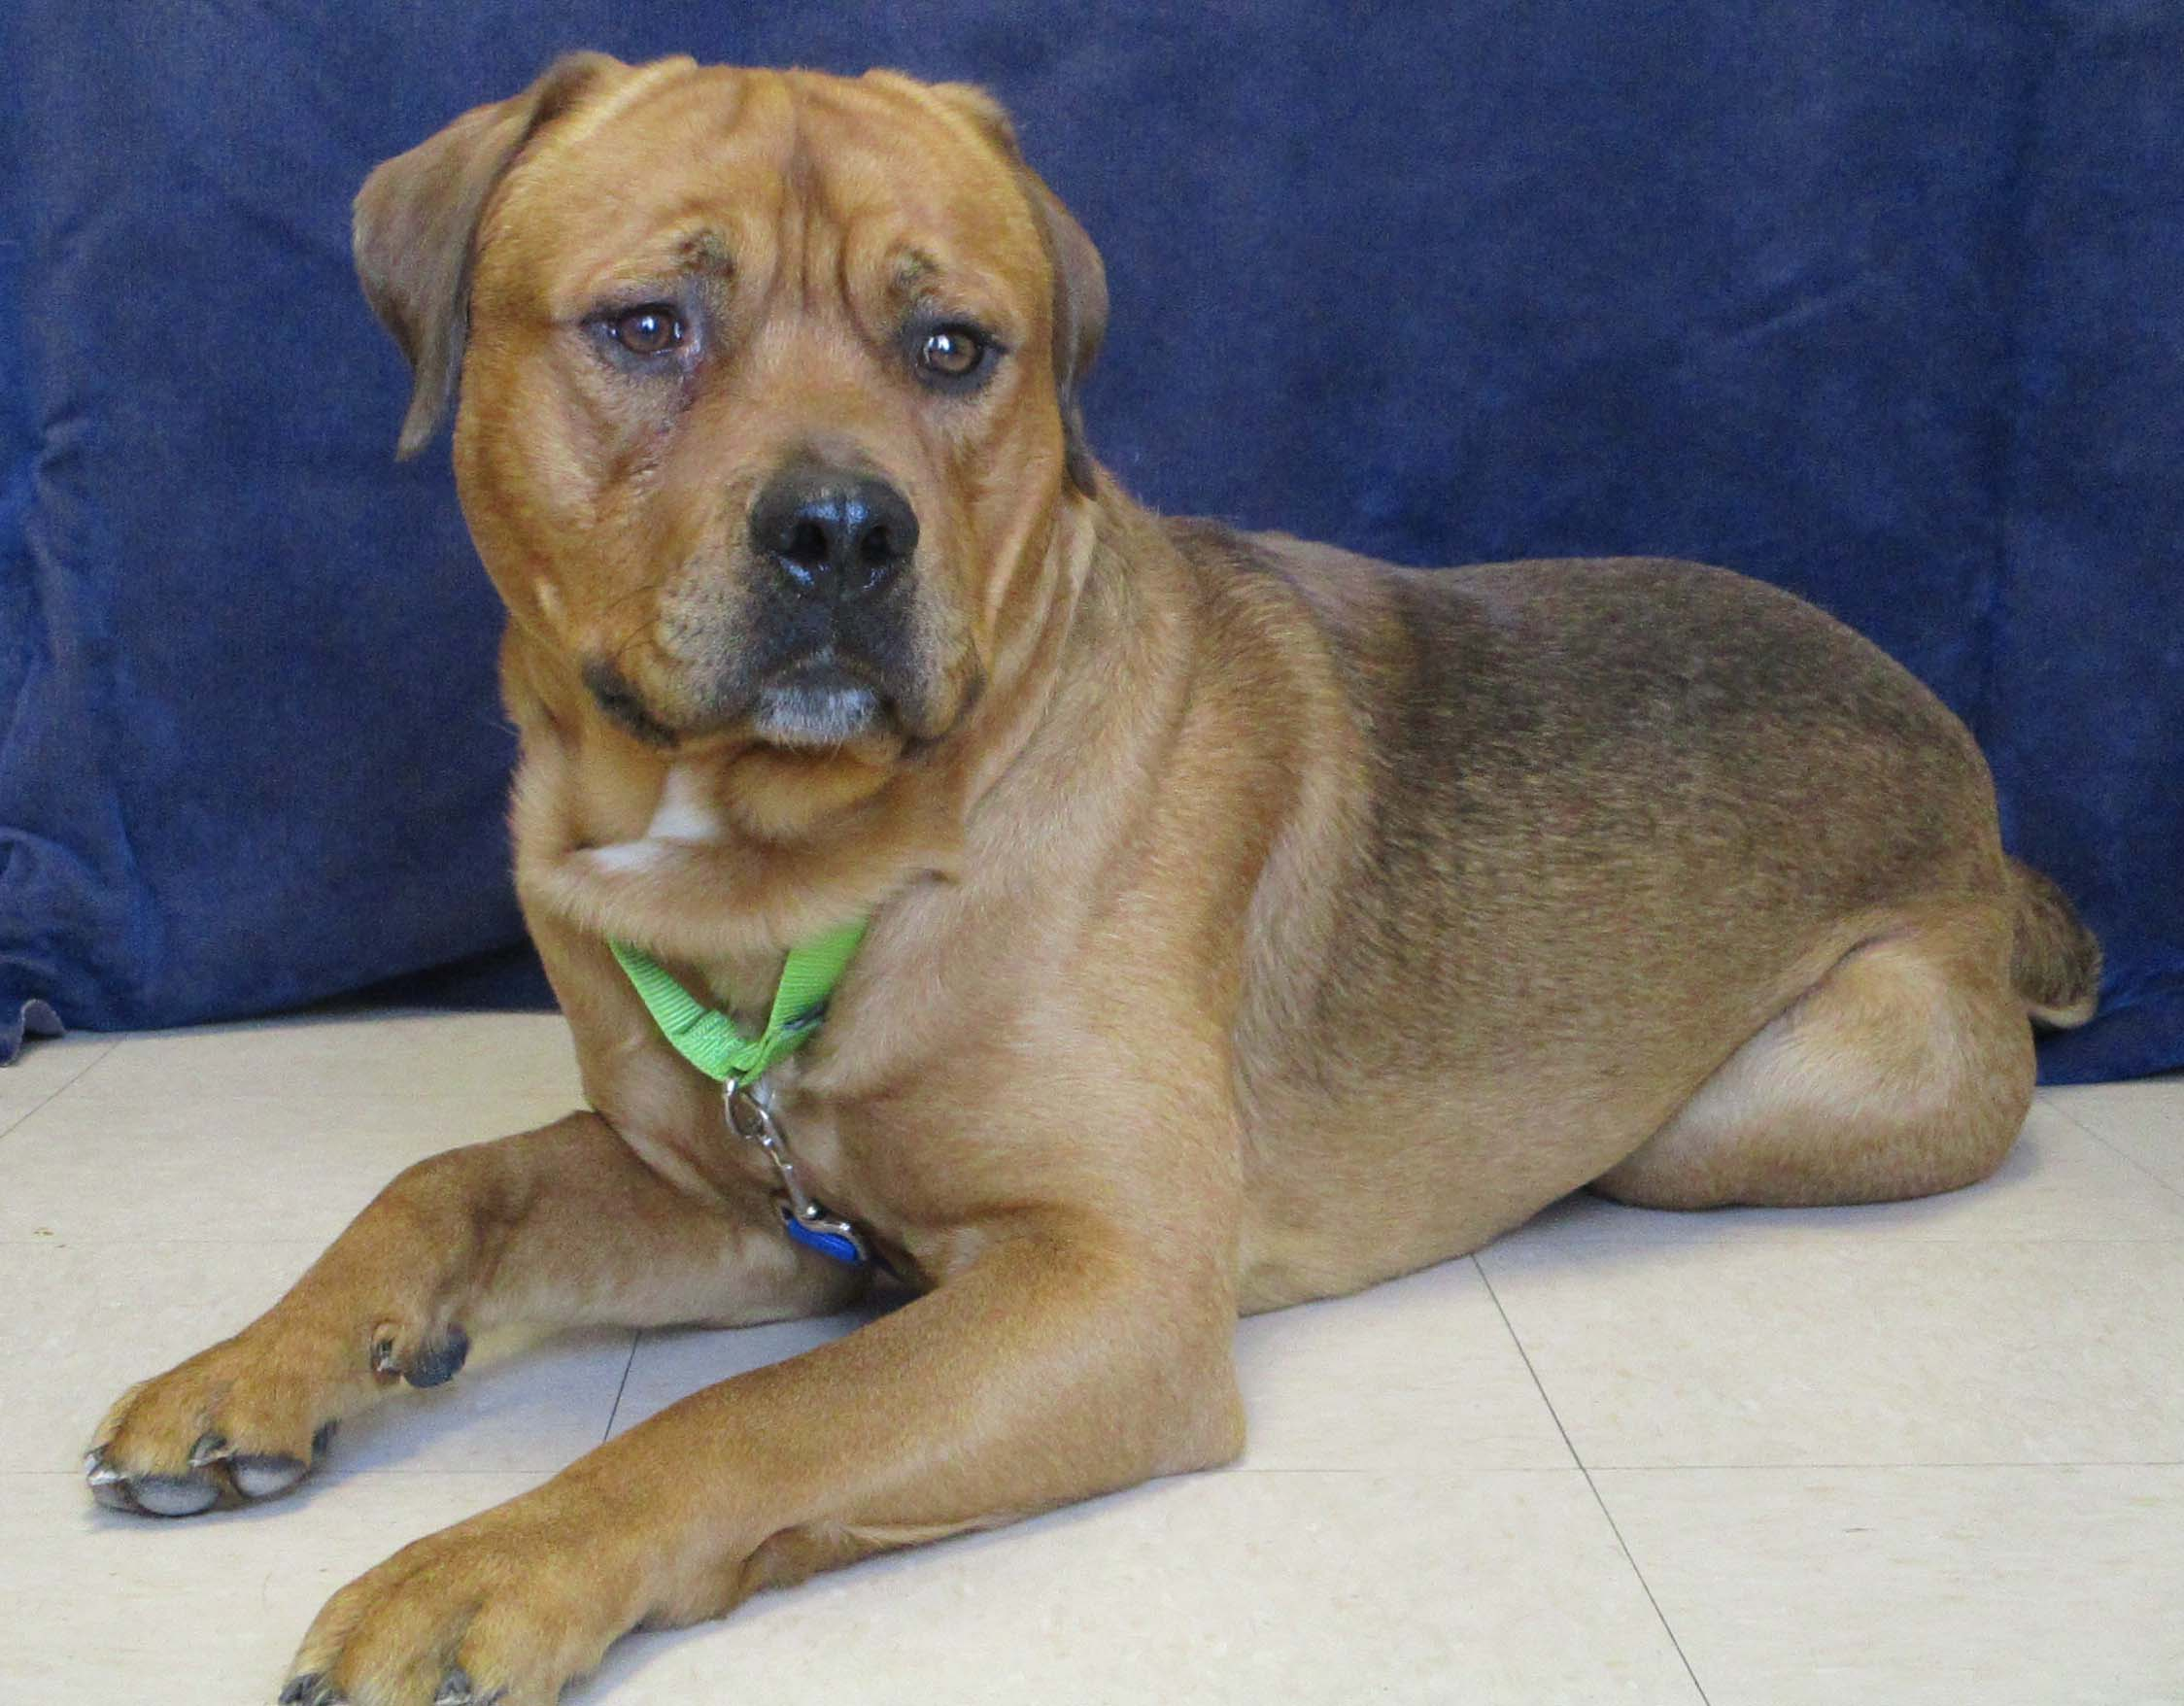 Sarge is a very handsome 1.5 year old Mastiff mix. He would do best in a home with older teens to adults because he is slow to warm up to new people. He does become loose and wiggly with time. If you are looking for a big boy to steal your spot on the couch, he's the one!